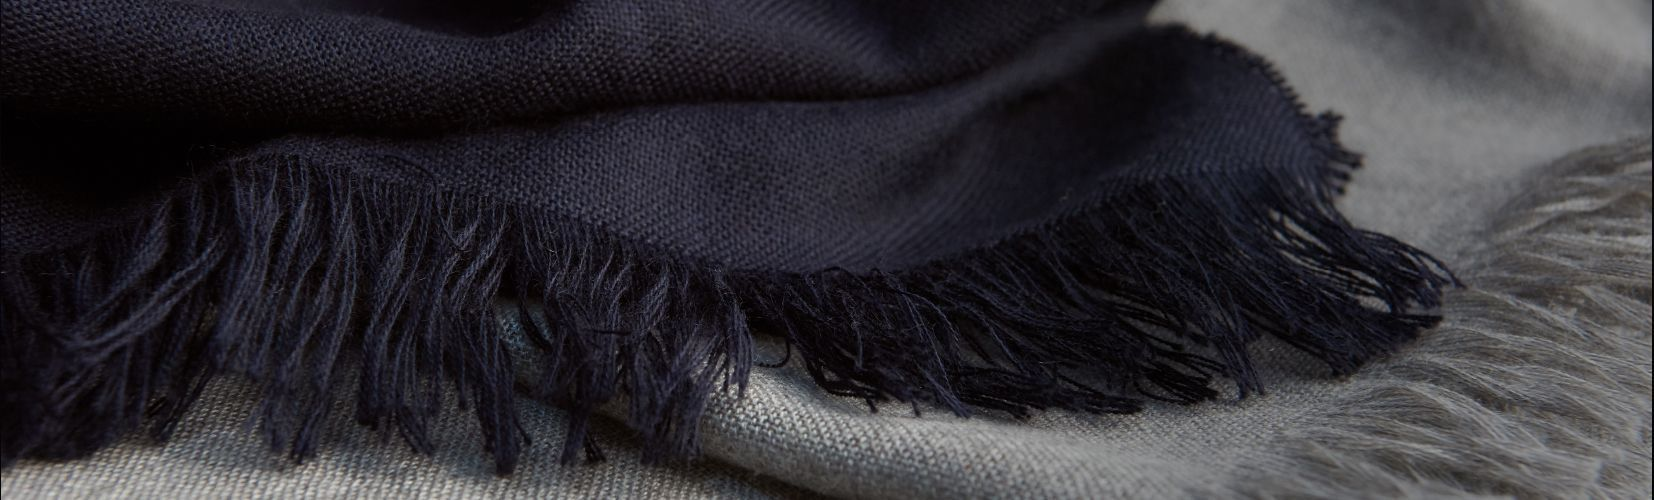 Huntsman Saville Row Accessories Shop Header Image - Navy and Grey Cashmere Scarves